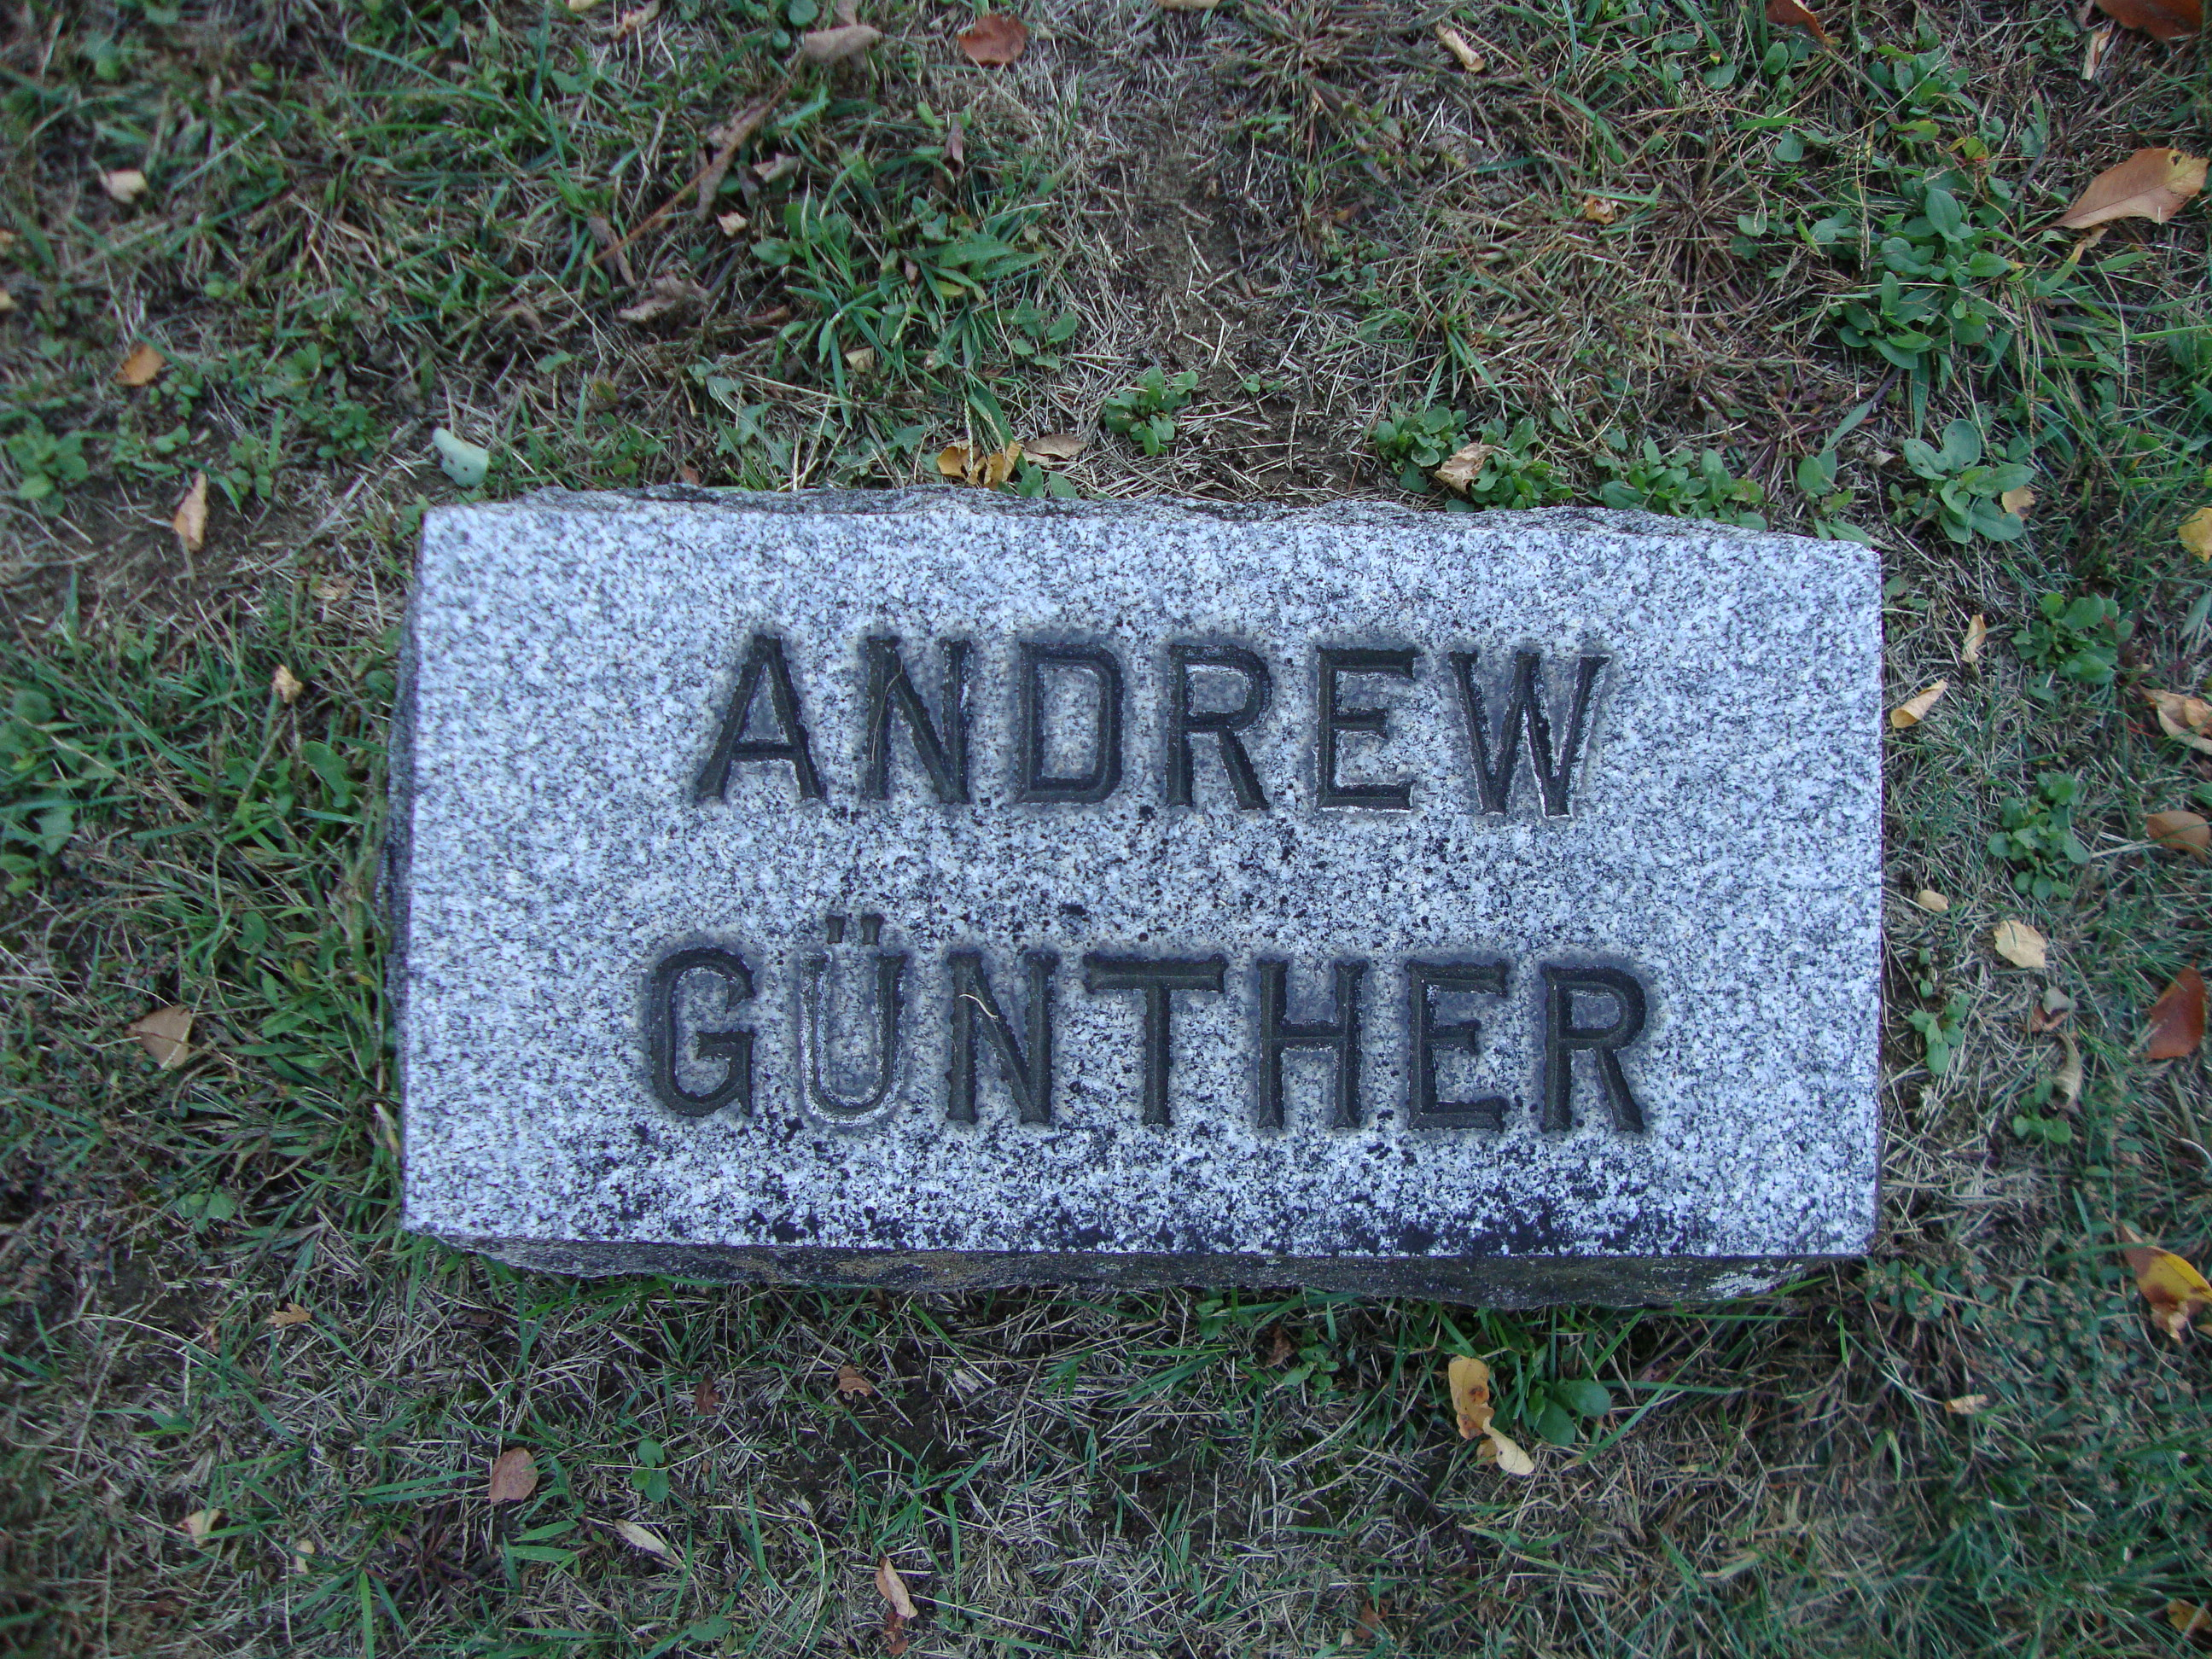 Andrew Guenther